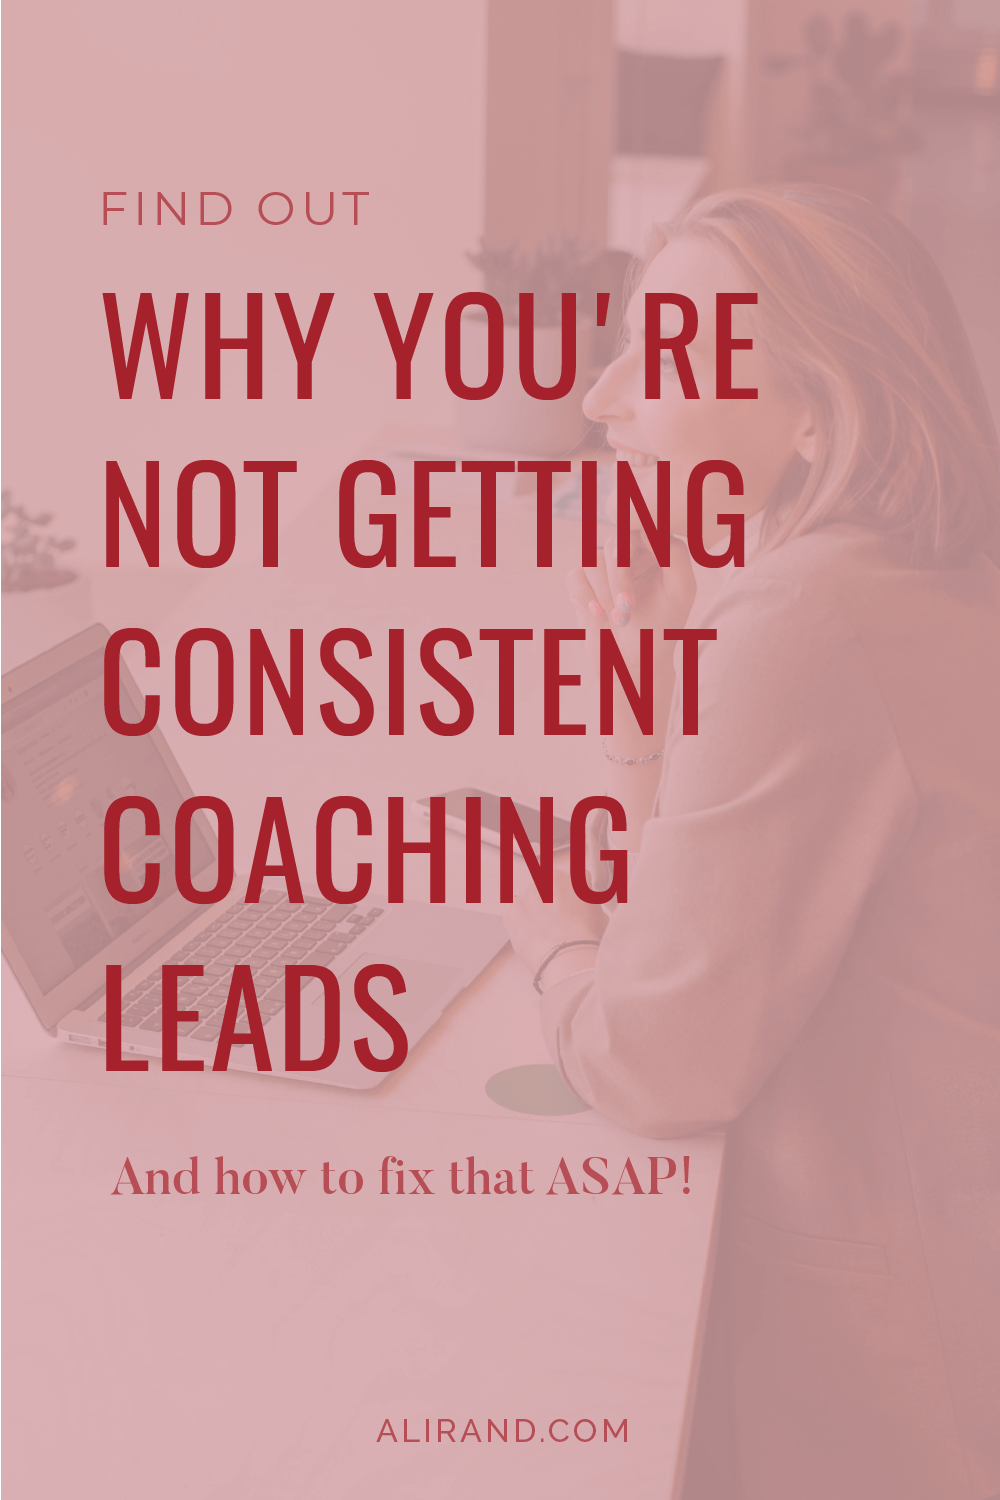 why you're not getting coaching leads by ali rand